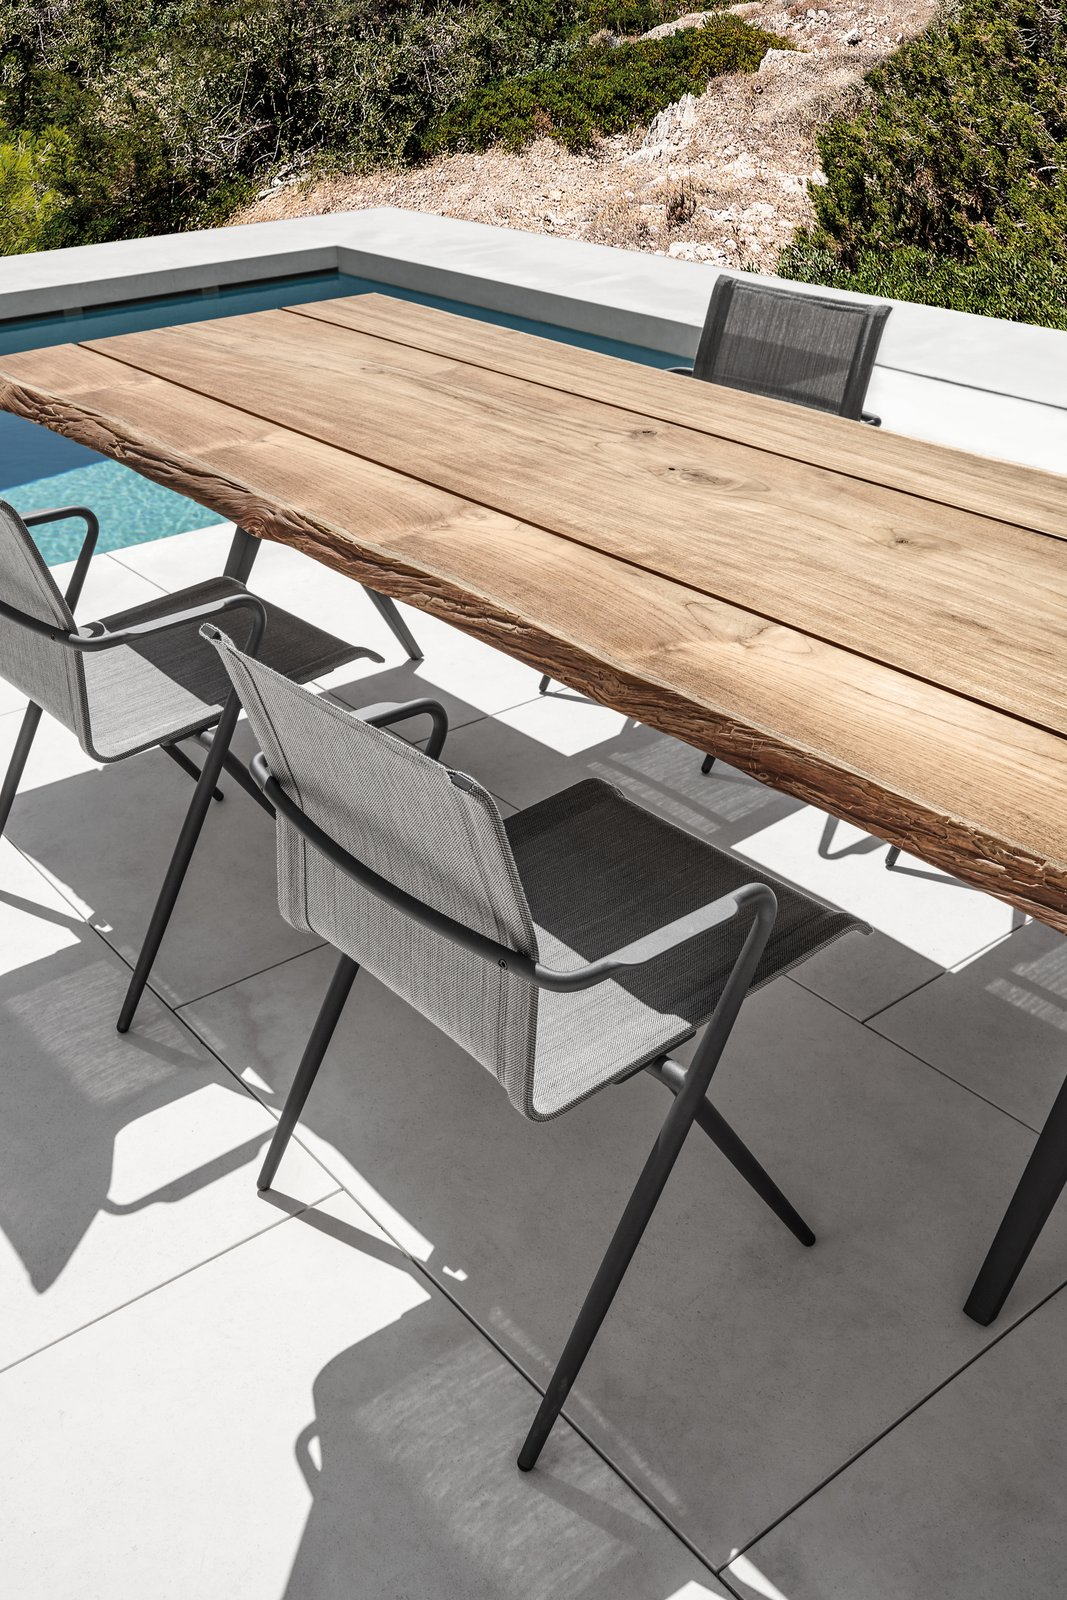 Chair, Table, Outdoor, Large Pools, Tubs, Shower, Small Pools, Tubs, Shower, Swimming Pools, Tubs, Shower, Large Patio, Porch, Deck, Hardscapes, Small Patio, Porch, Deck, Back Yard, and Tile Patio, Porch, Deck Stackable Ryder dining chair in a dark version in contrast to the limited edition teak table Split Raw.  Dining Chairs